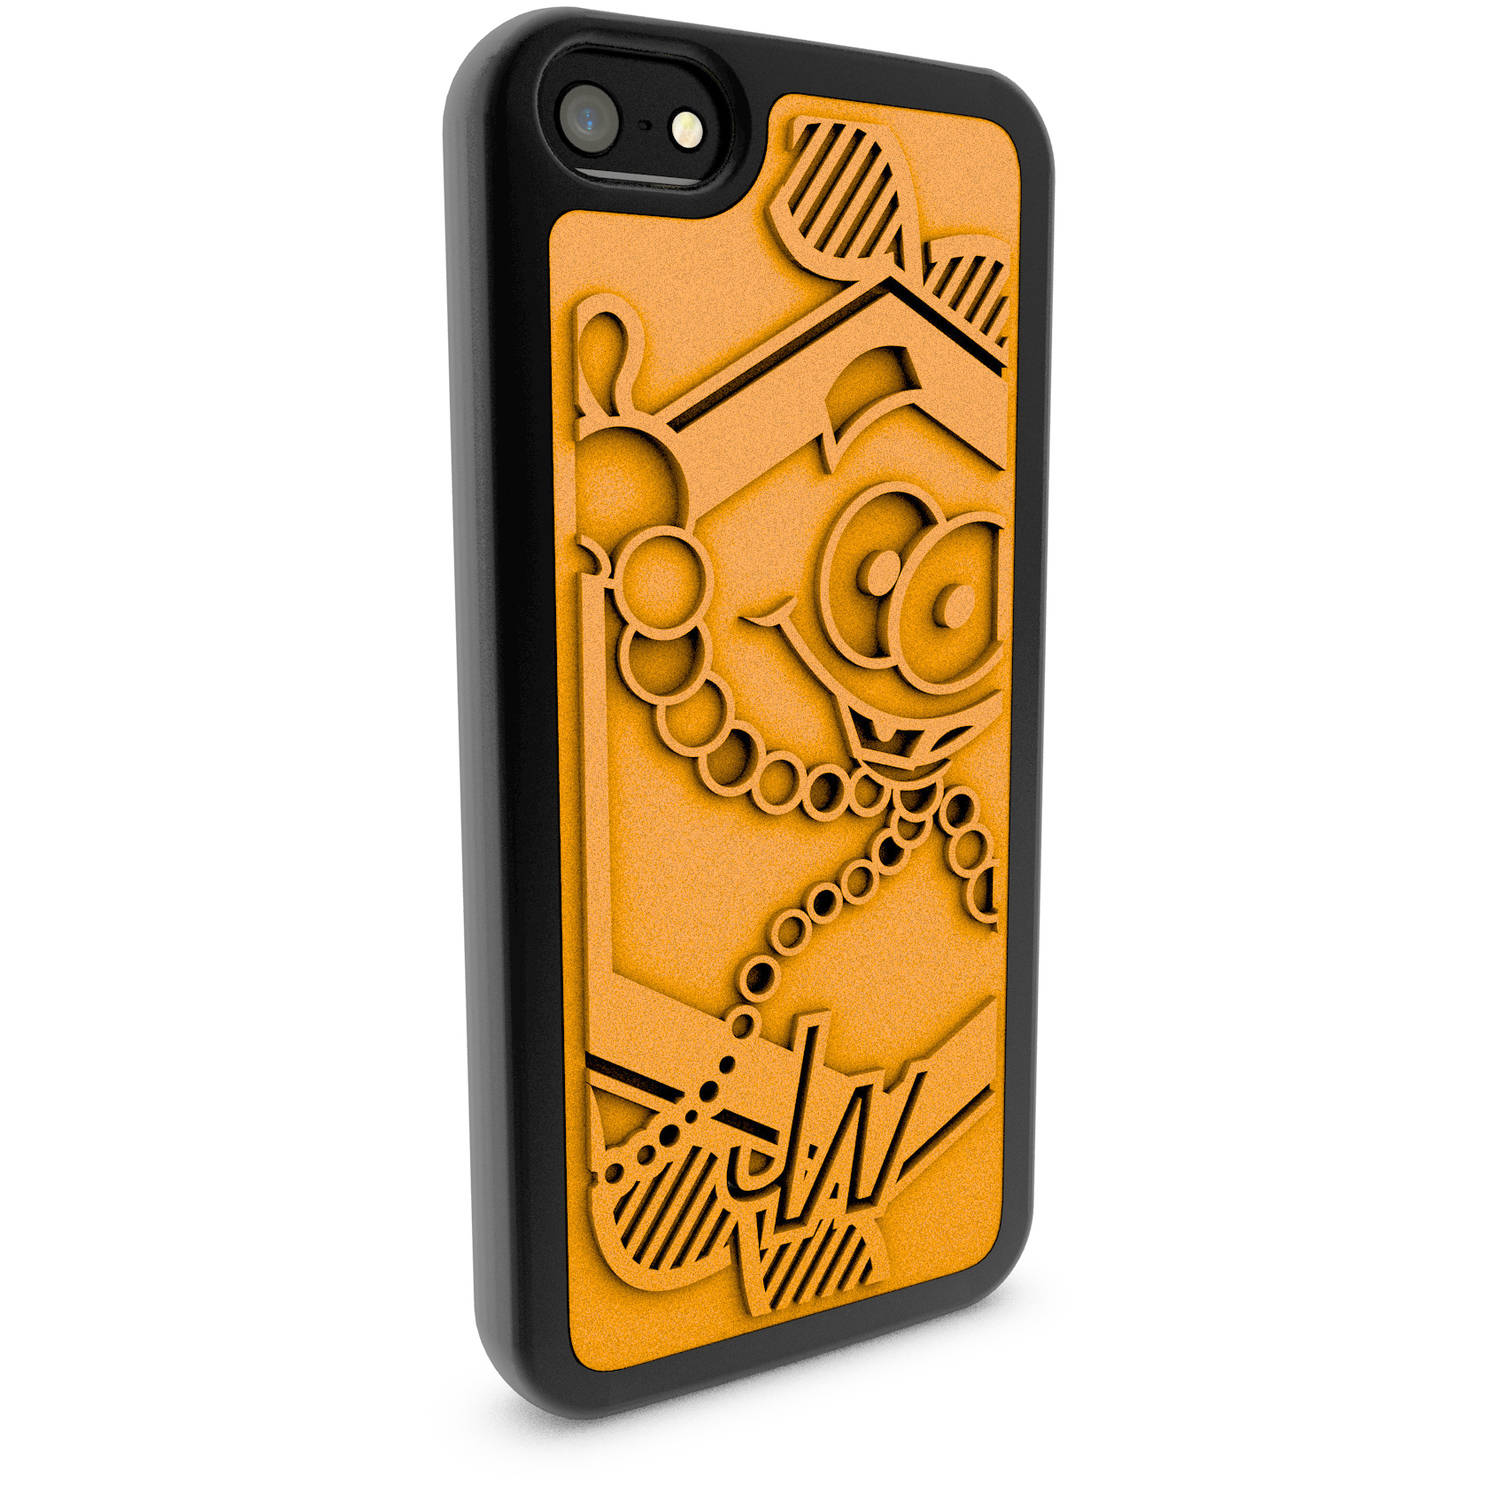 Apple iPhone 5 and 5S 3D Printed Custom Phone Case - Jurassic World - Mr. DNA